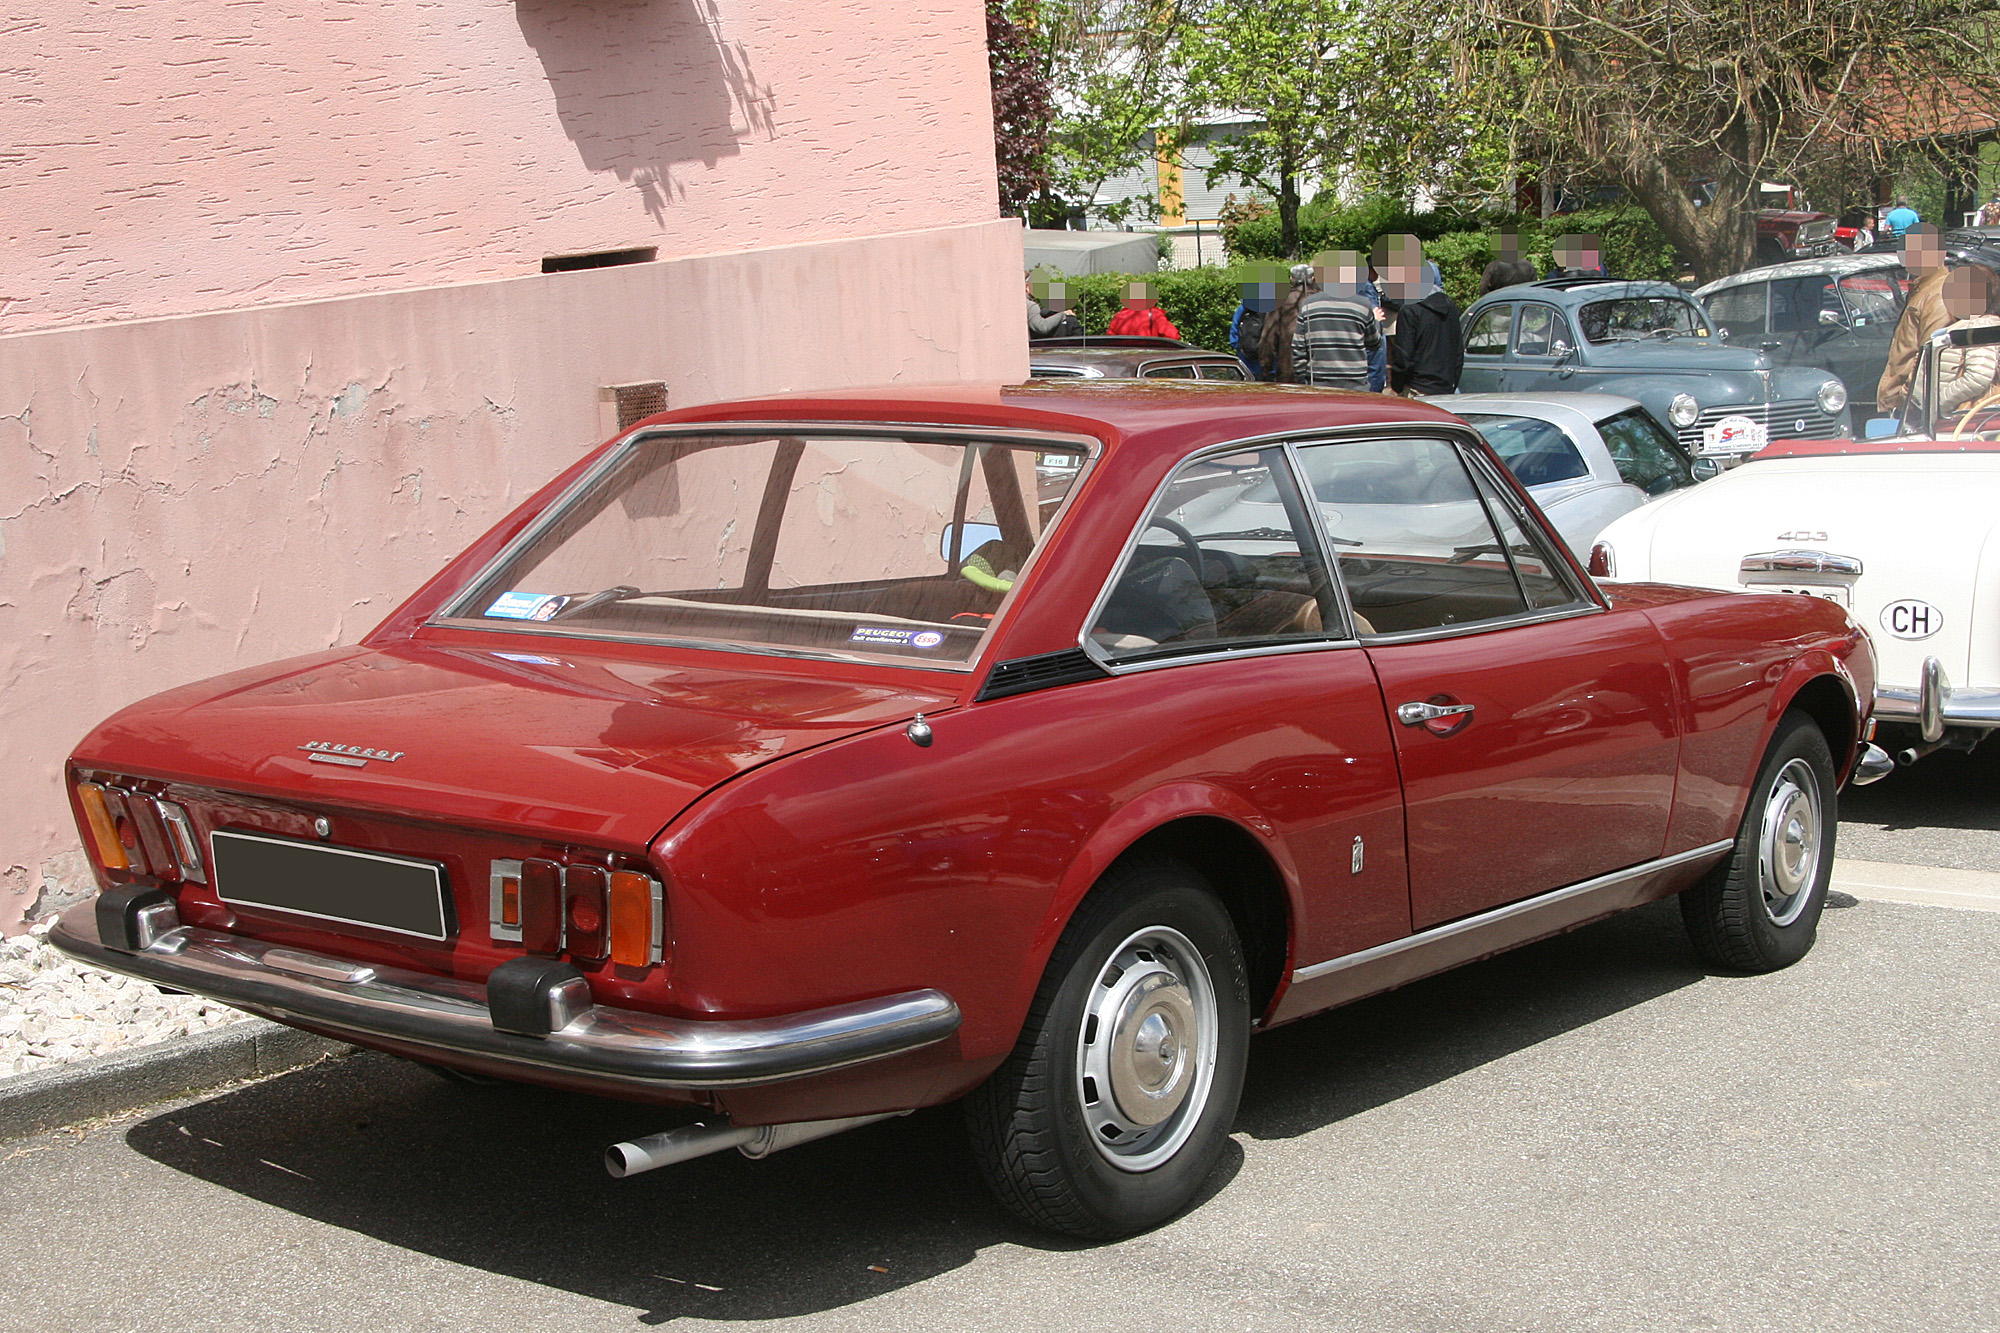 peugeot 504 v6 coupe injection 1974 car specs and details. Black Bedroom Furniture Sets. Home Design Ideas